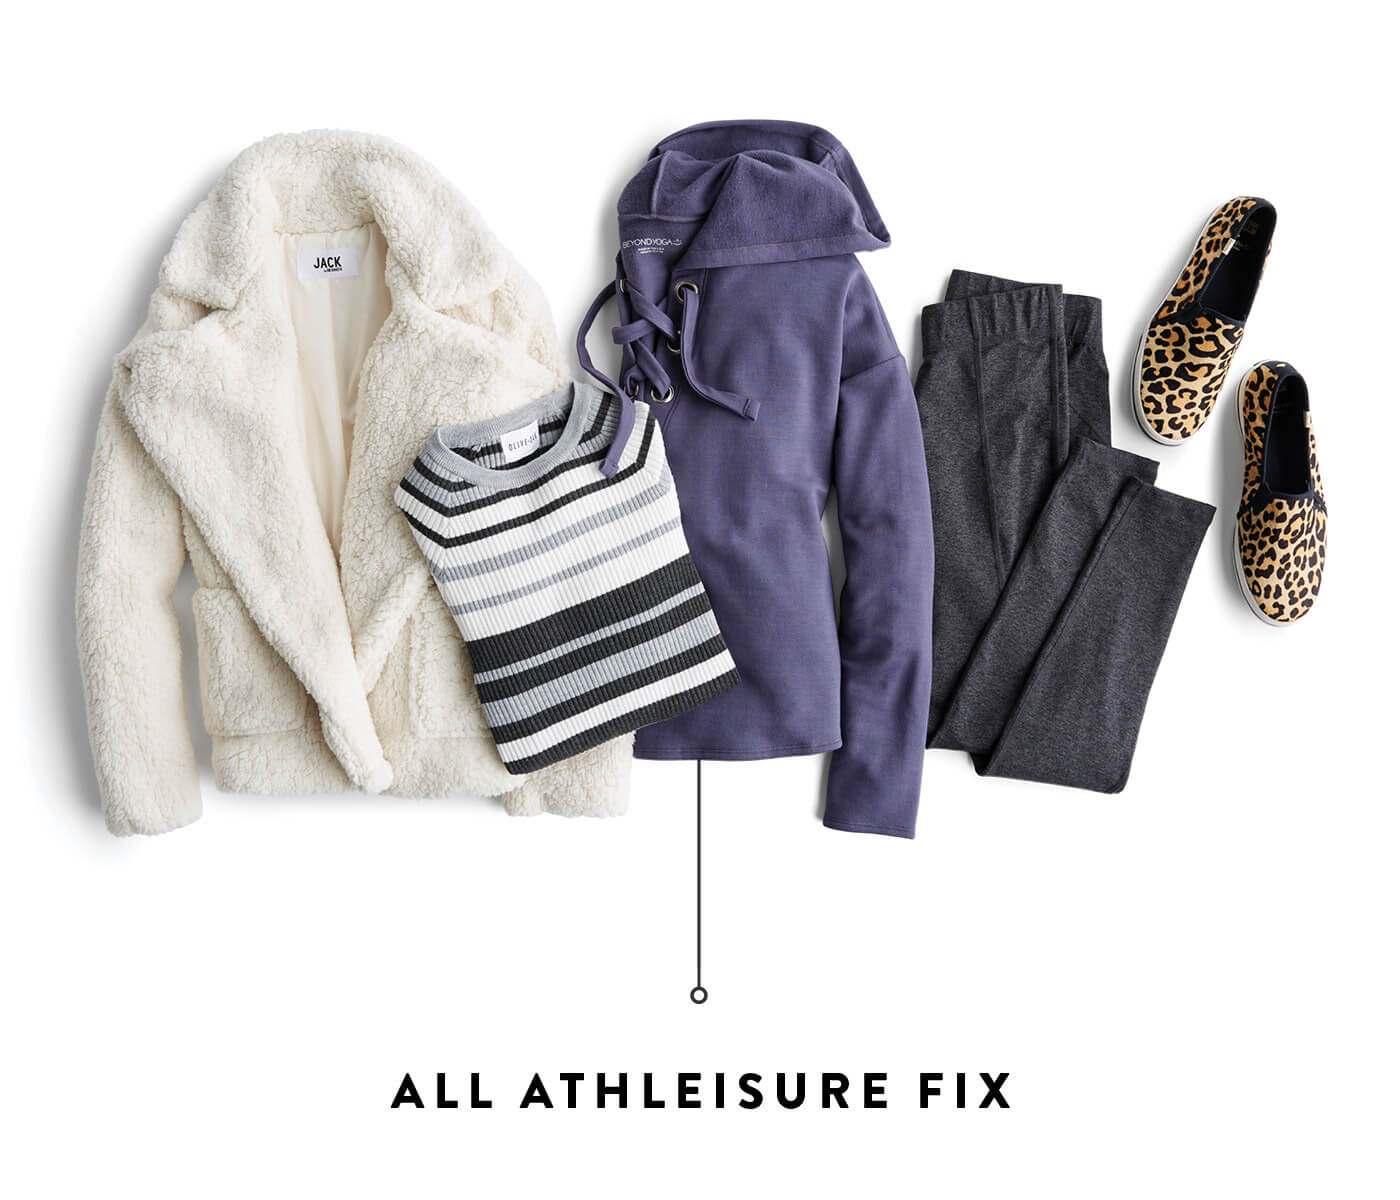 all athleisure fix